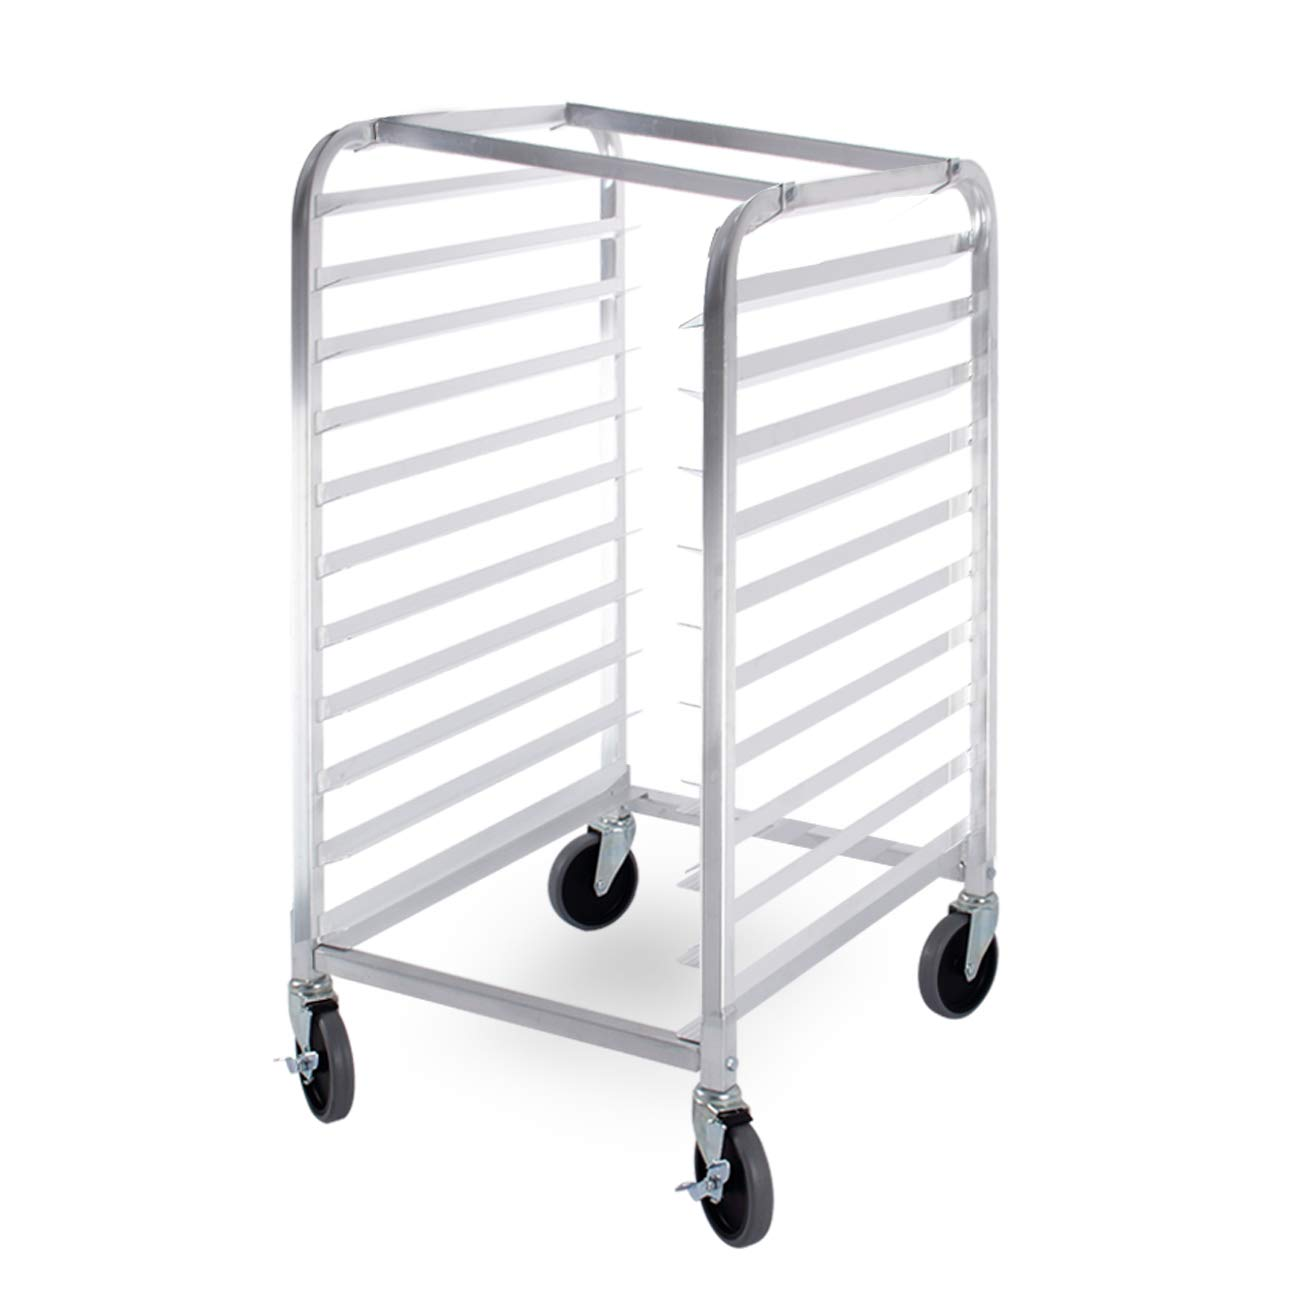 ARKSEN Commercial Kitchen 10 Tier Bun Pan Half Height Rack Sheet Aluminum w/Brake Wheels